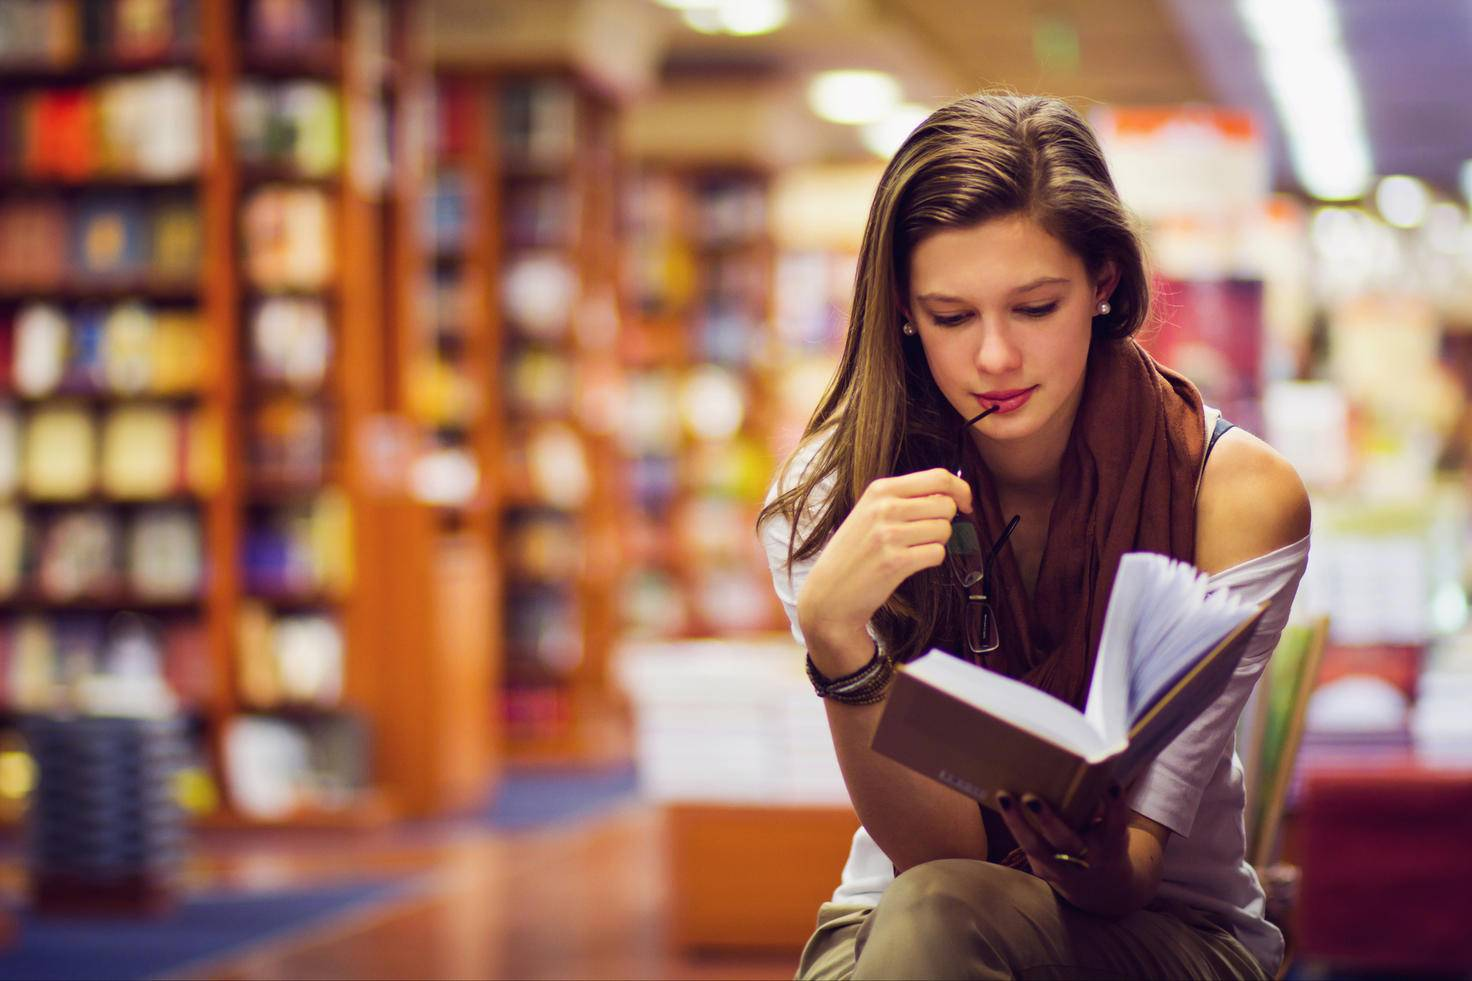 A girl is reading among books.